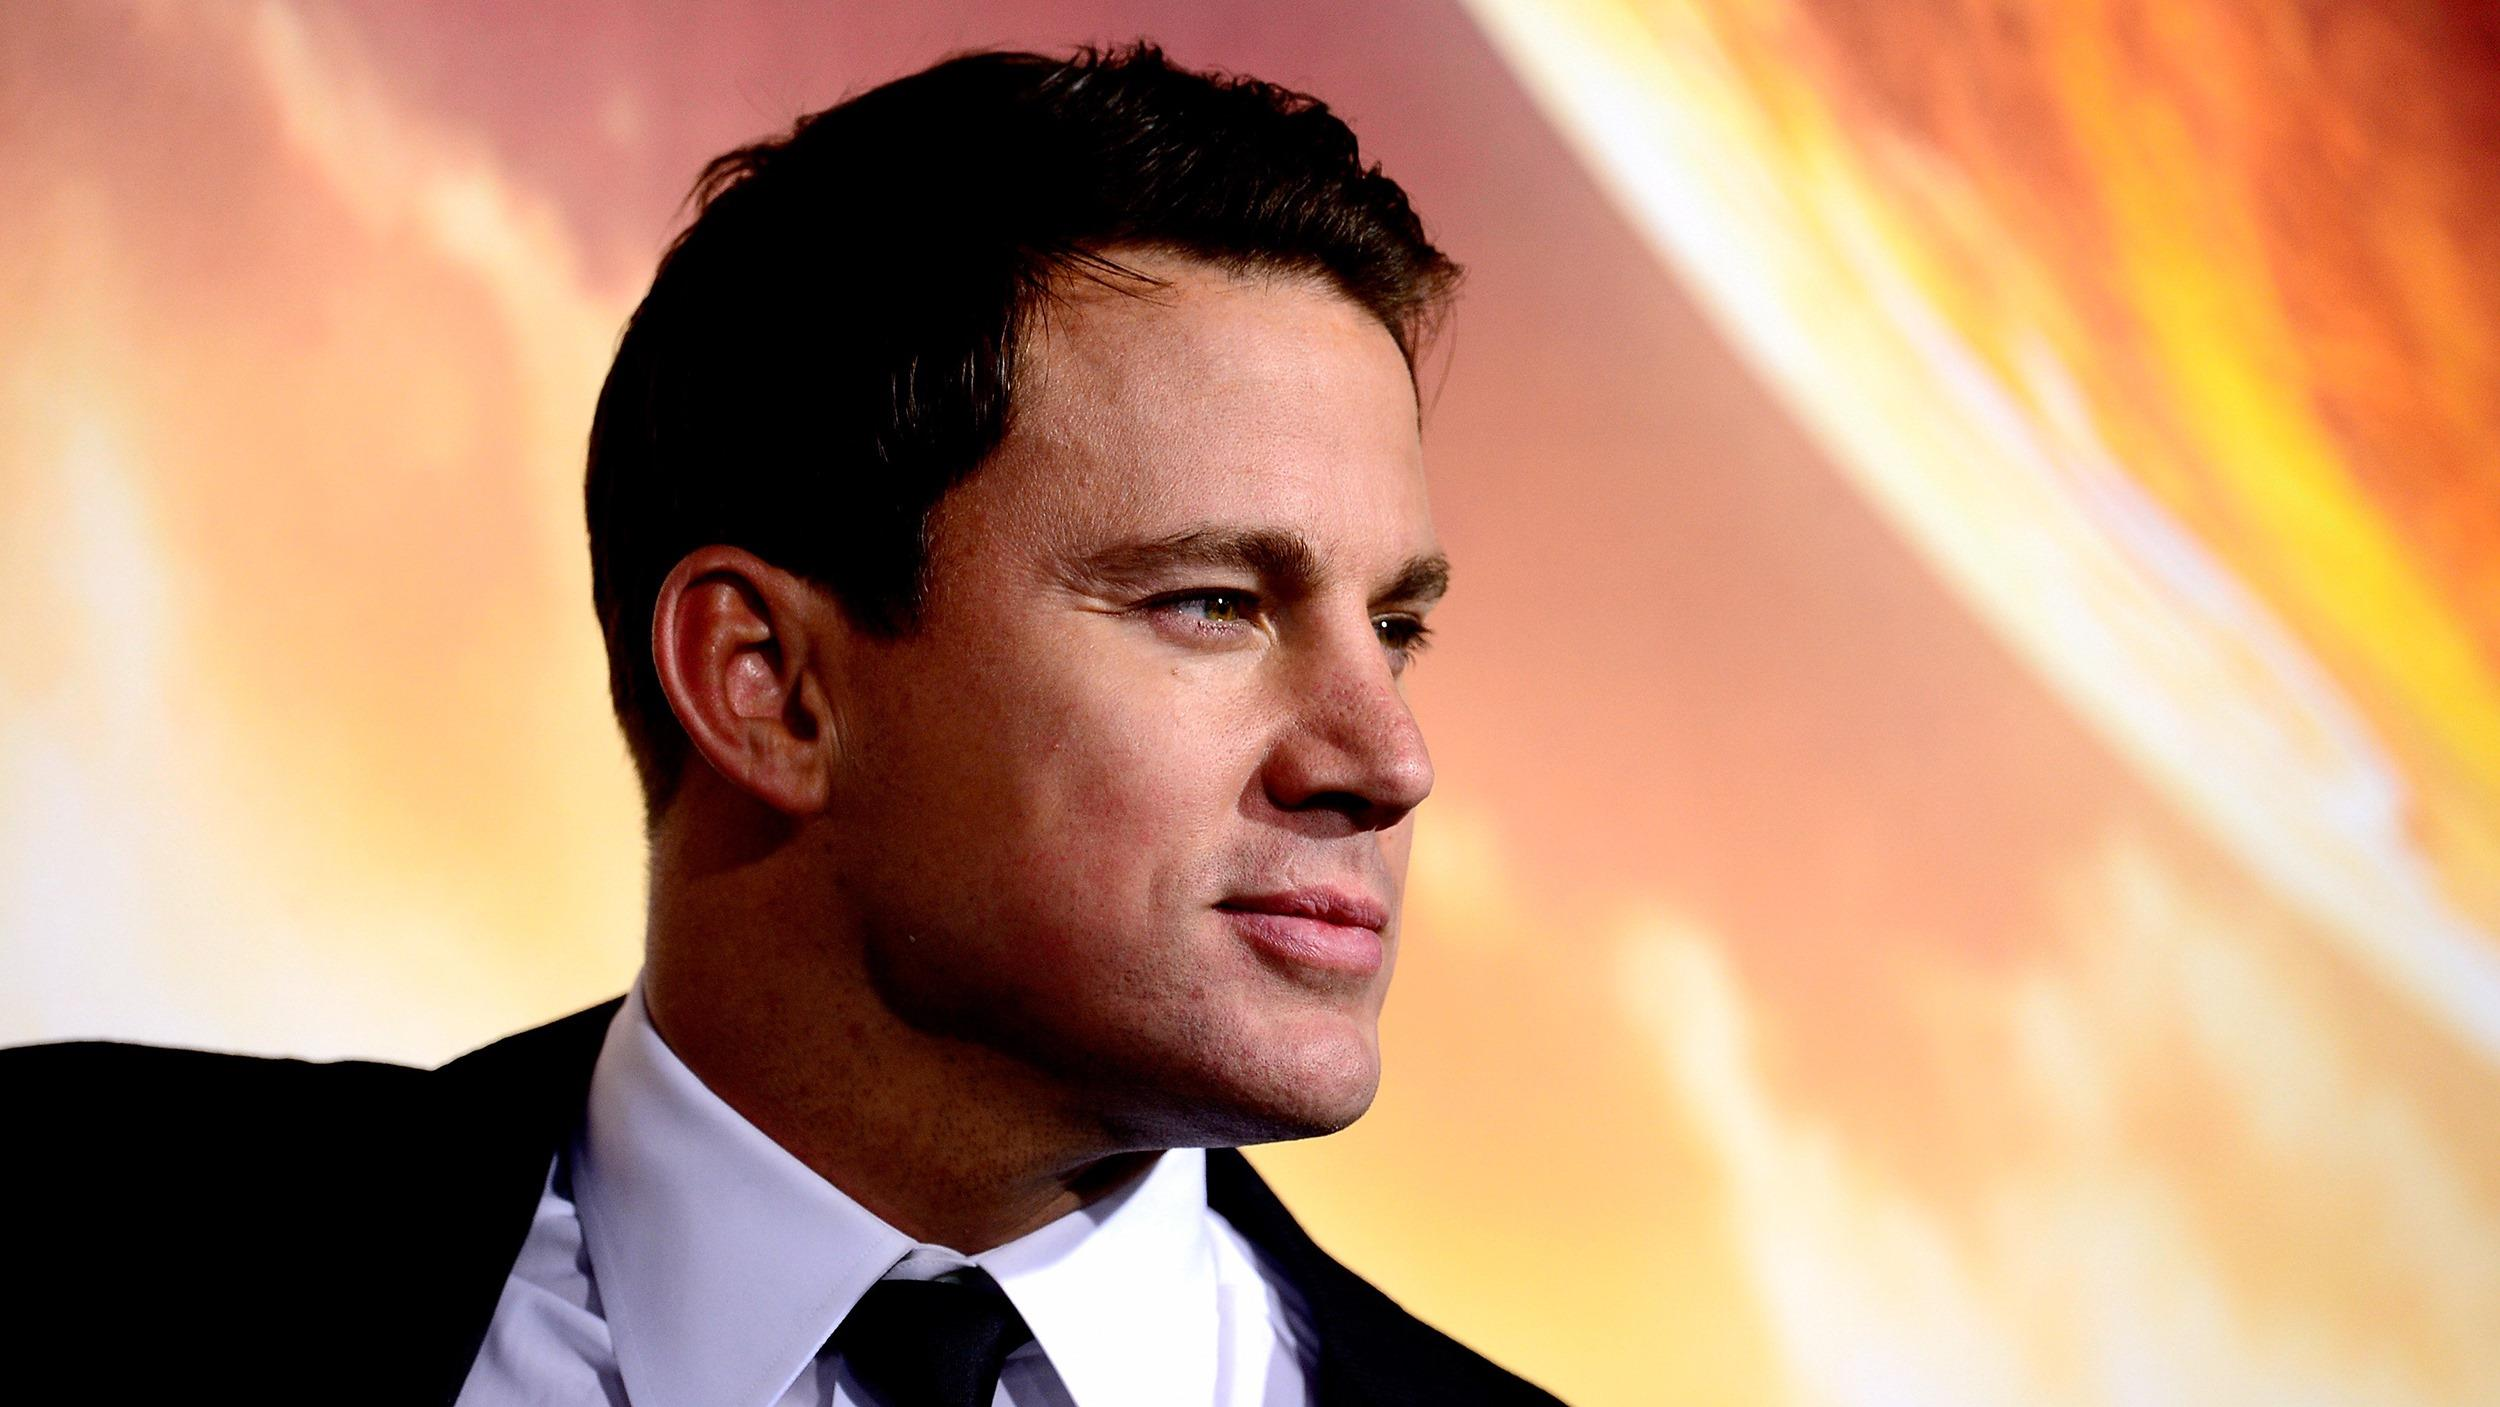 Channing Tatum says goodbye to pet goat: See the sweet photo - TODAY ...